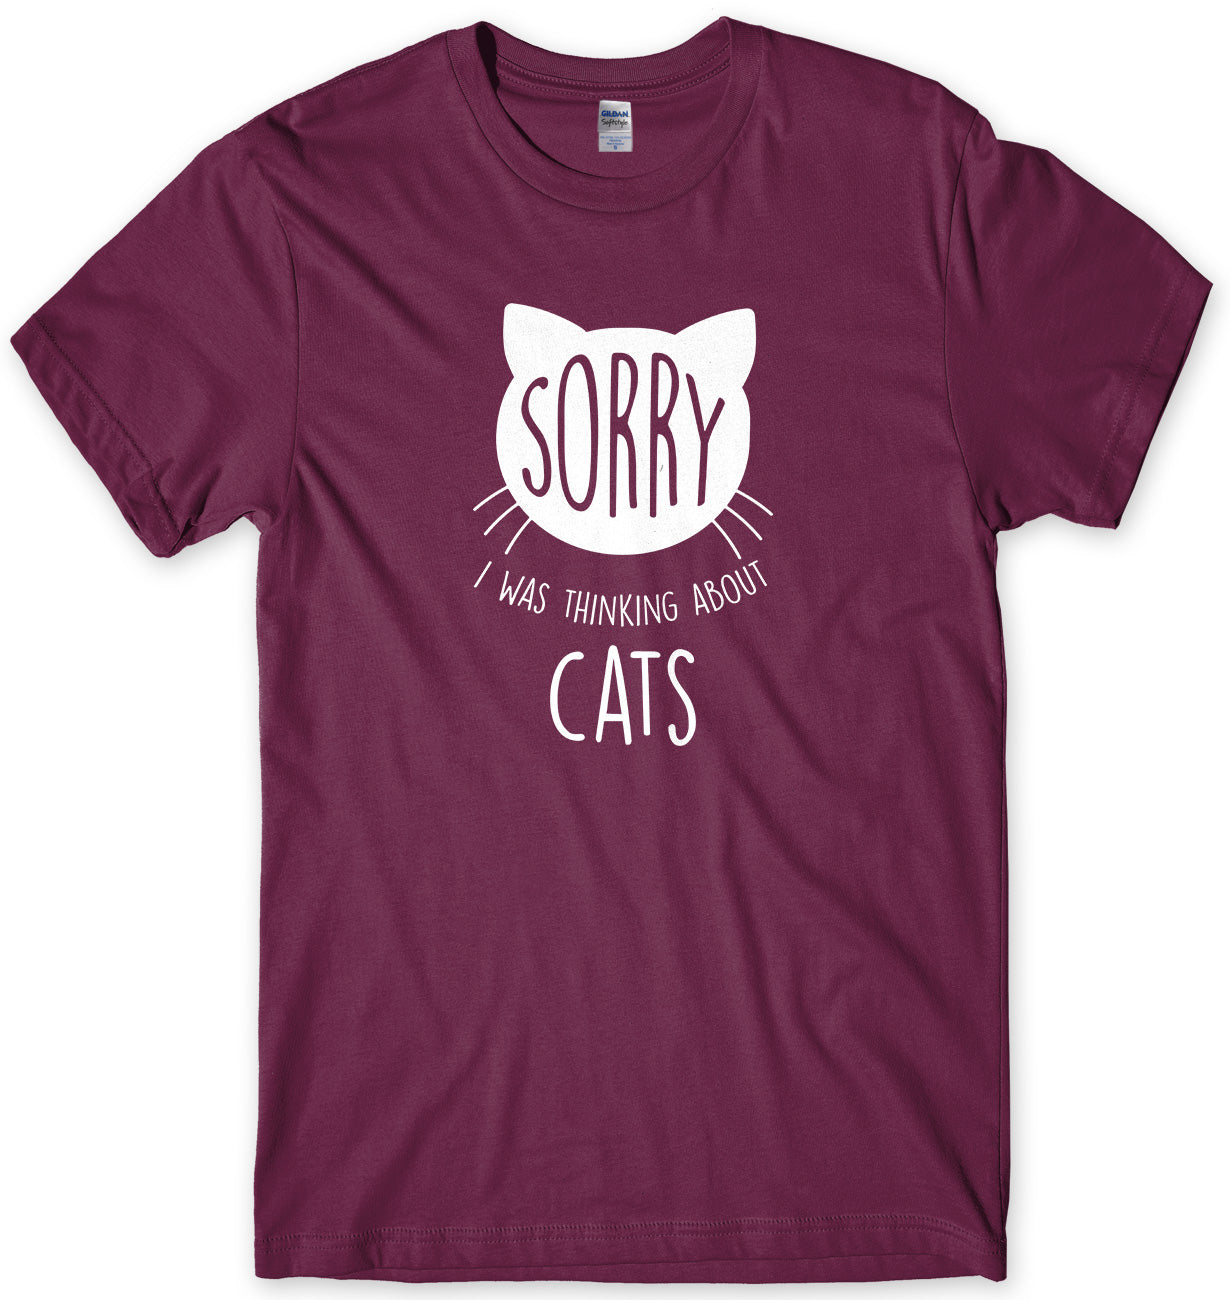 Sorry, I Was Thinking About Cats Mens Unisex Style T-Shirt